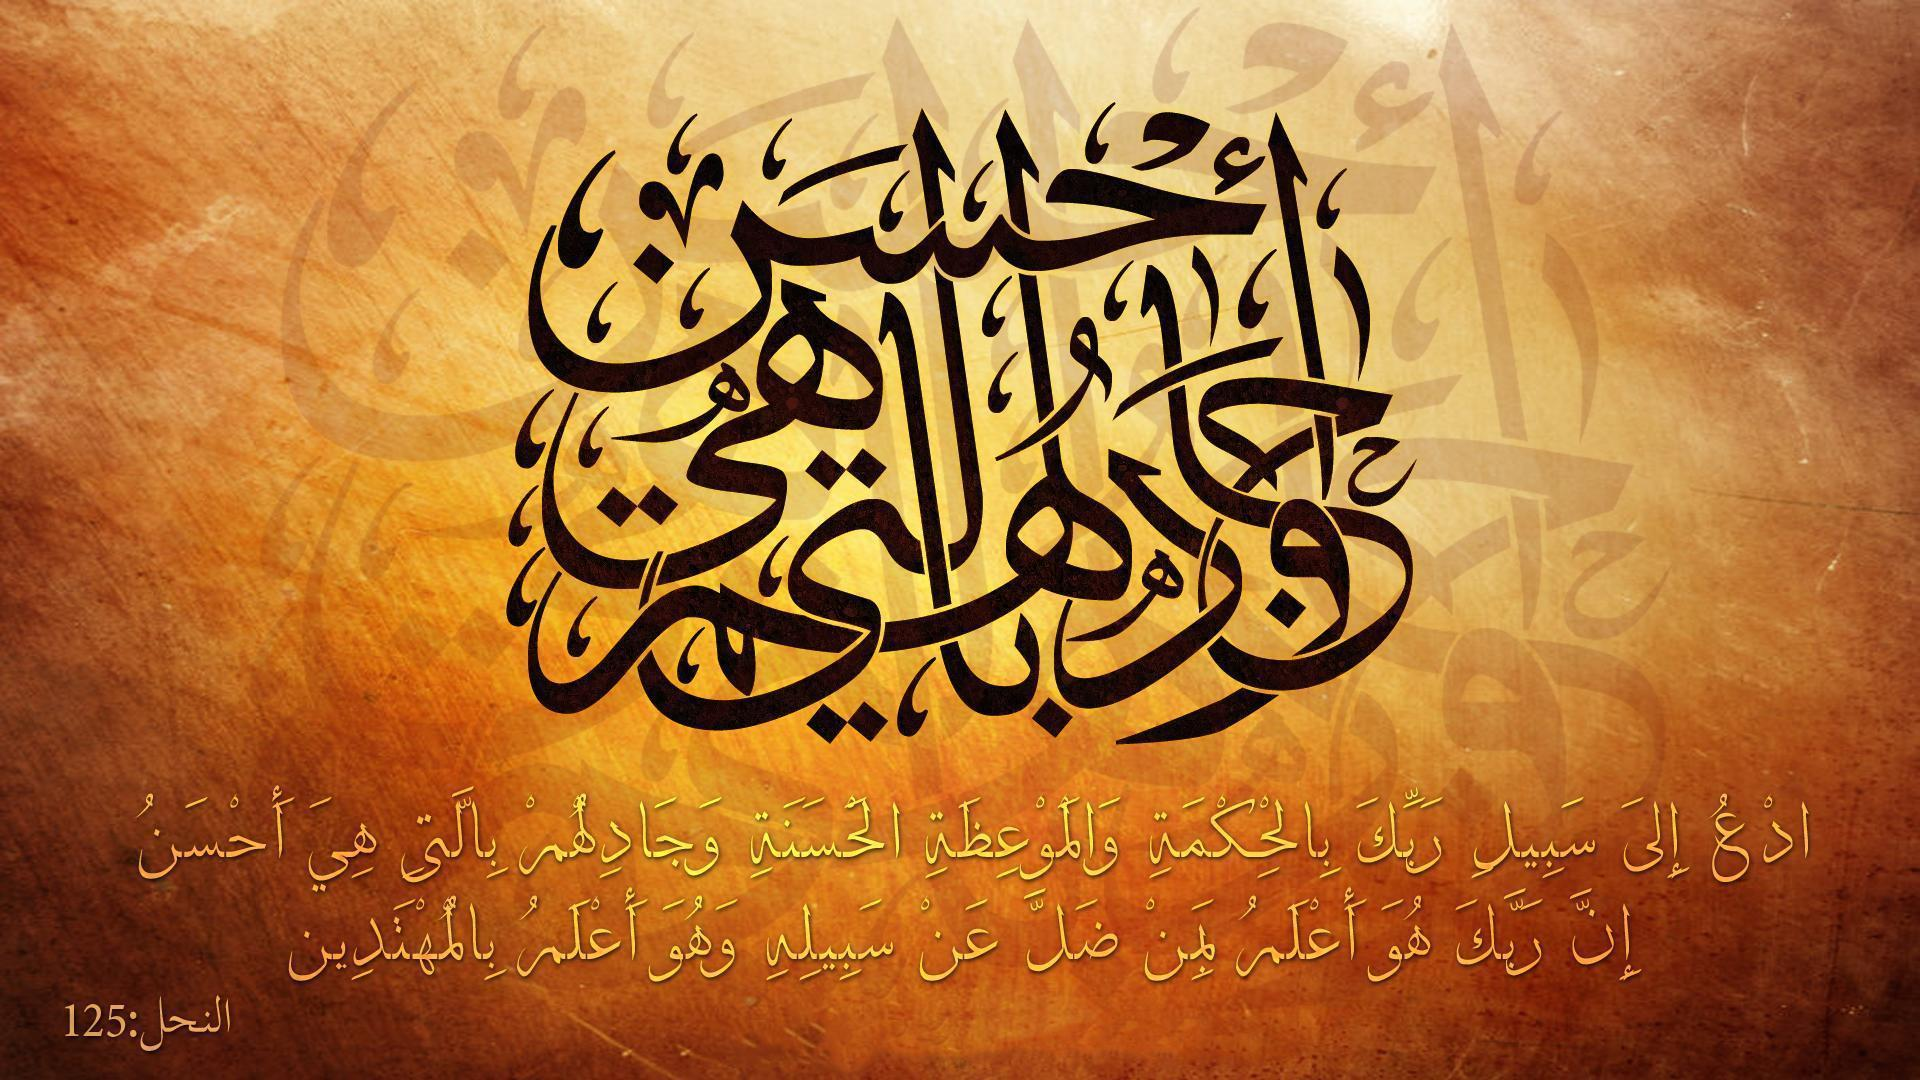 Quran wallpapers wallpaper cave Calligraphy ayat